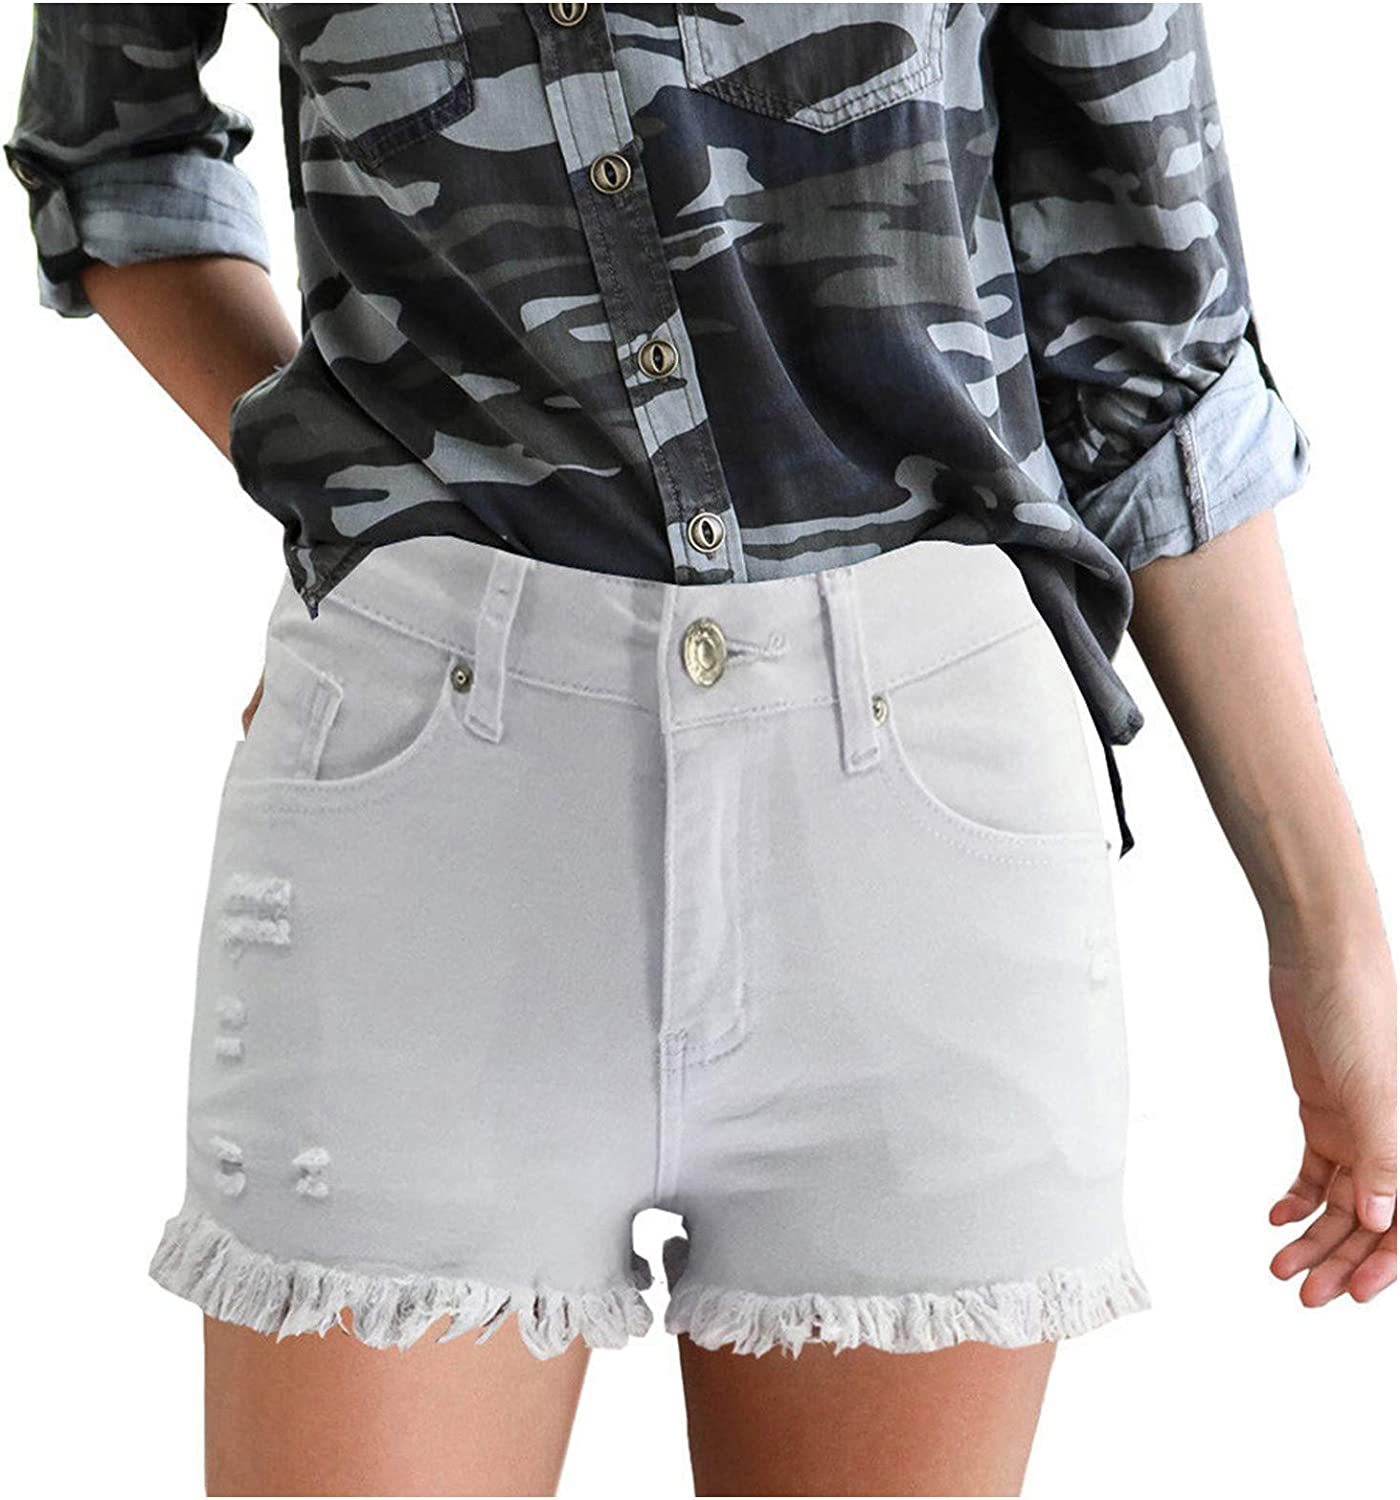 JPVDPA Women's High Waisted Ripped Short Jeans Casual Denim Shorts Soft and Stretchy Shorts with Pockets